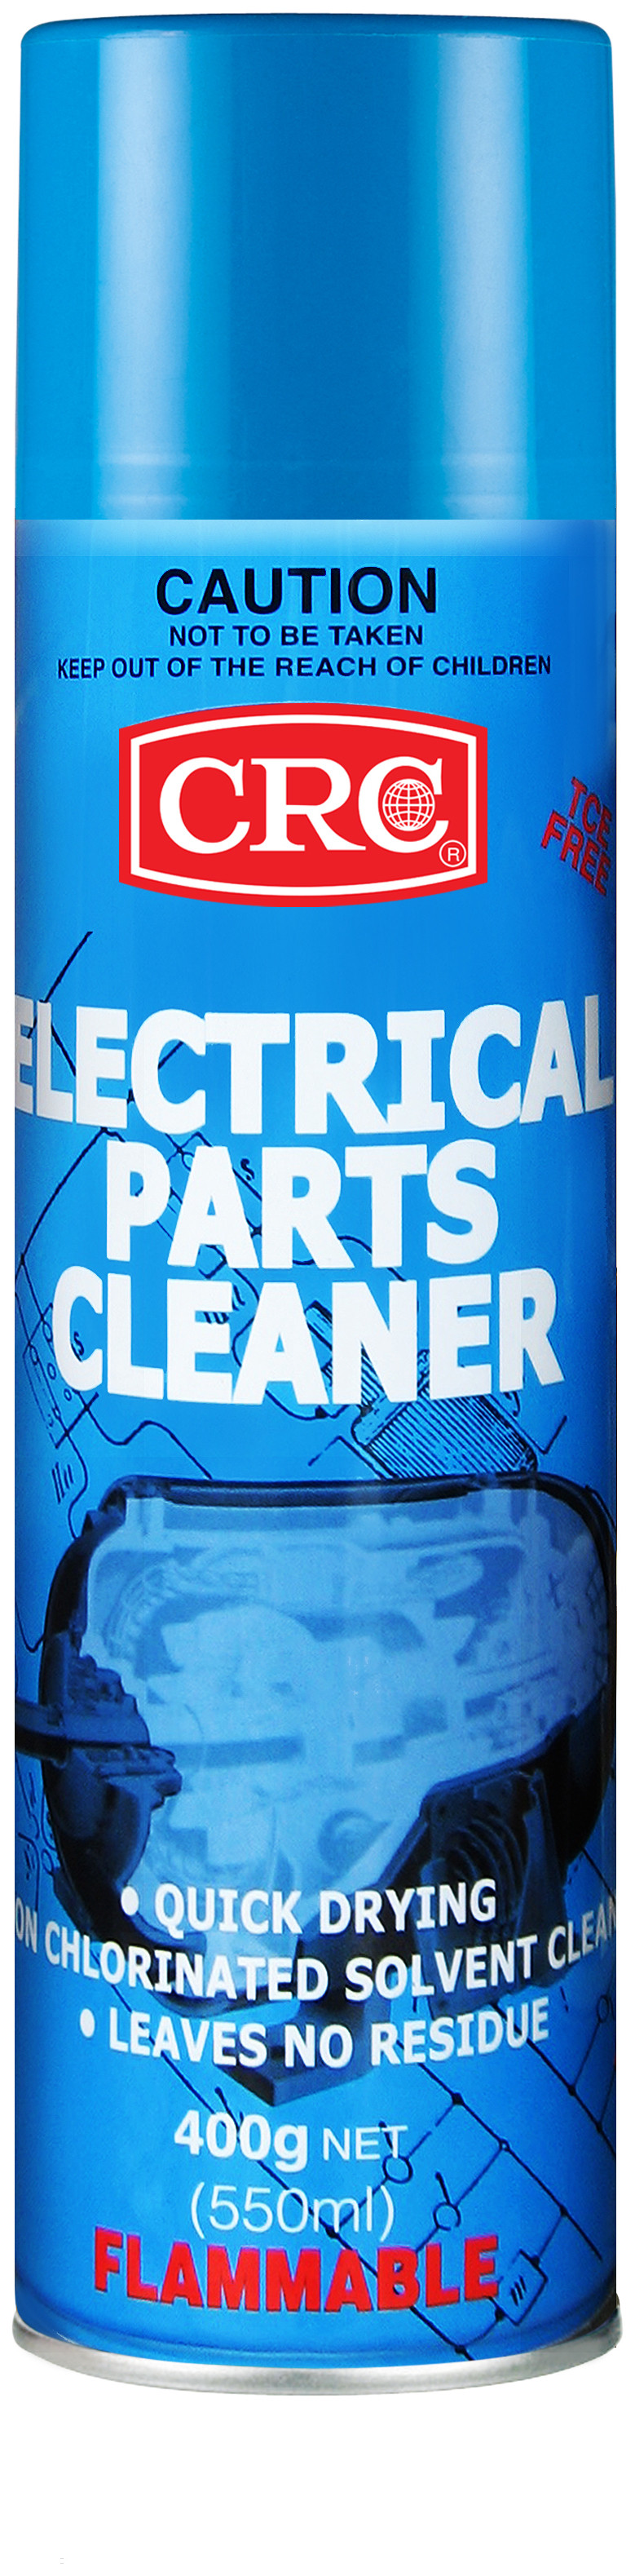 ELECTRICAL PARTS CLEANERCode: 2019